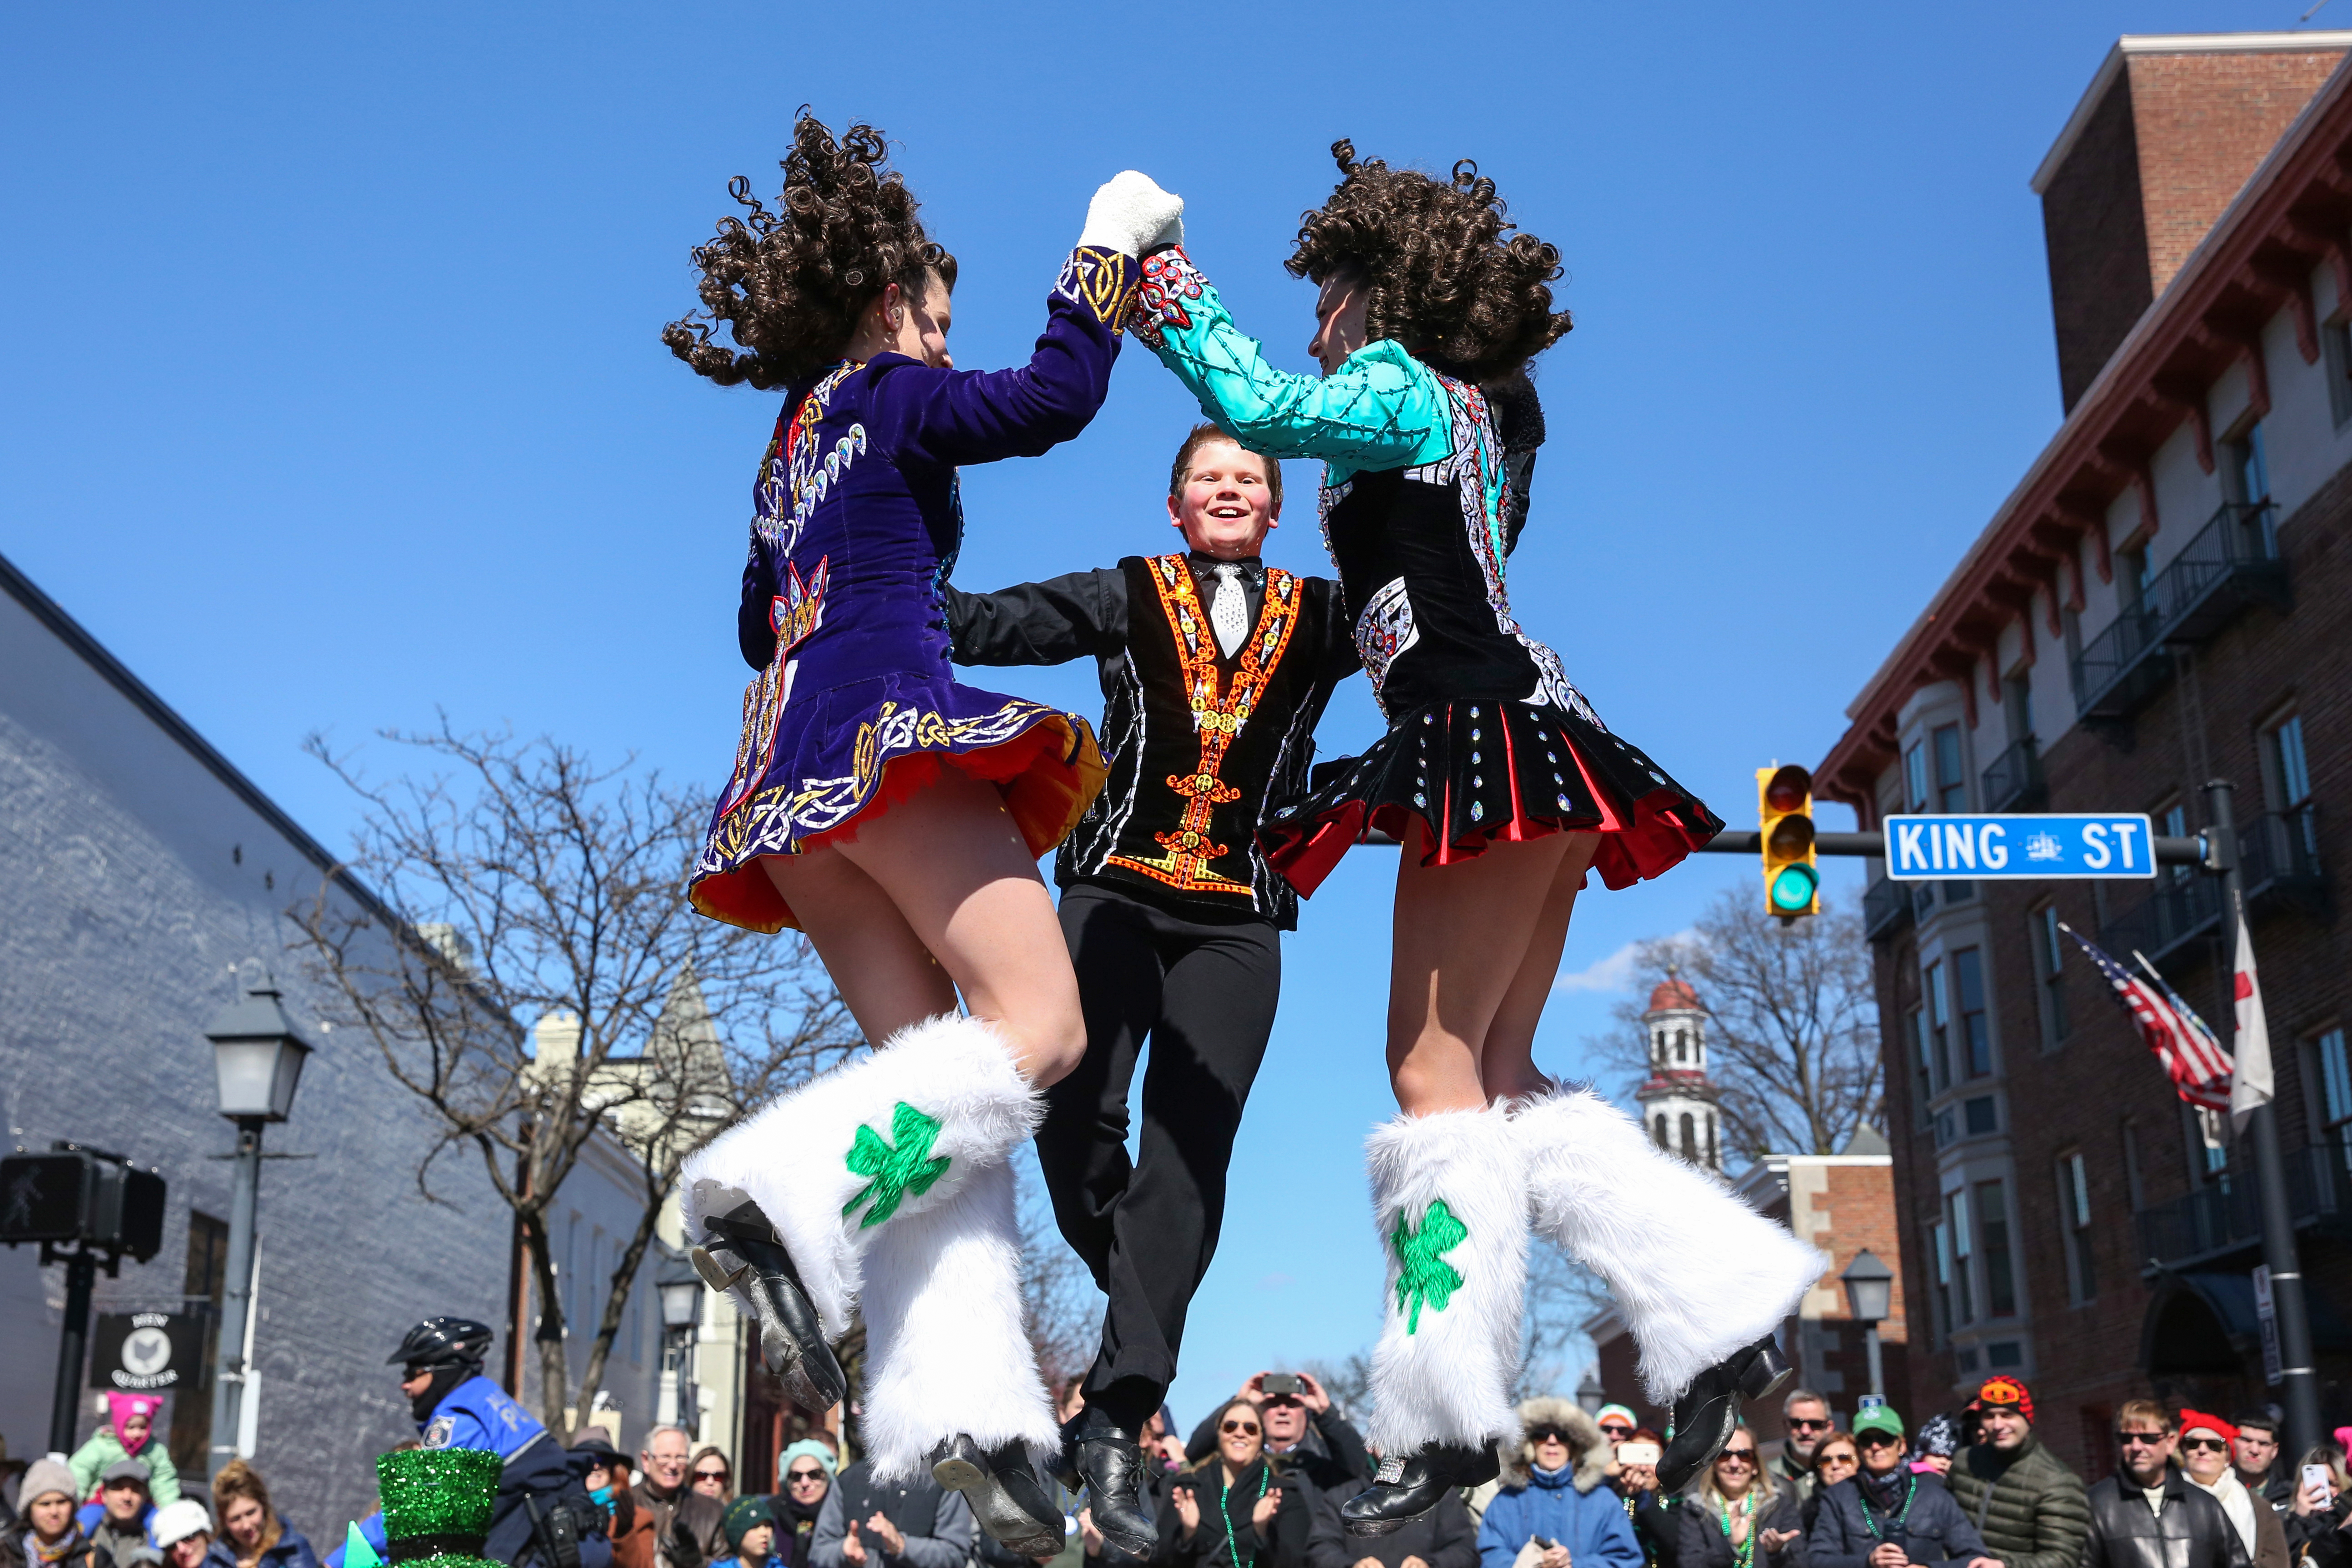 March, 2017. Irish dancers do a step at the Alexandria St. Patrick's Day parade.{&amp;nbsp;} (Amanda Andrade-Rhoades/DC Refined)<p></p>